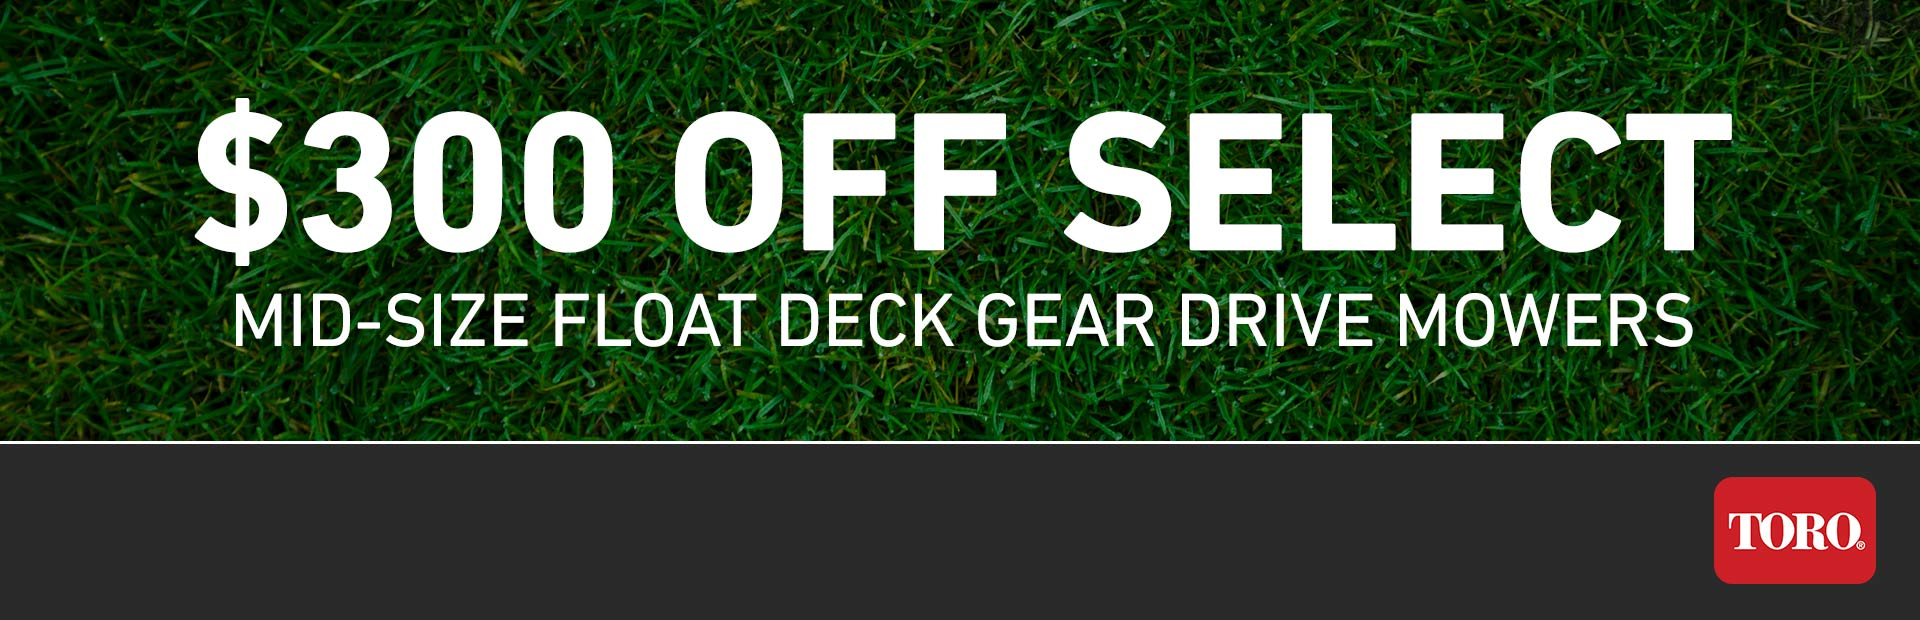 Toro: $300 Off Select MidSize FloatDeck Gear Walk Mowers